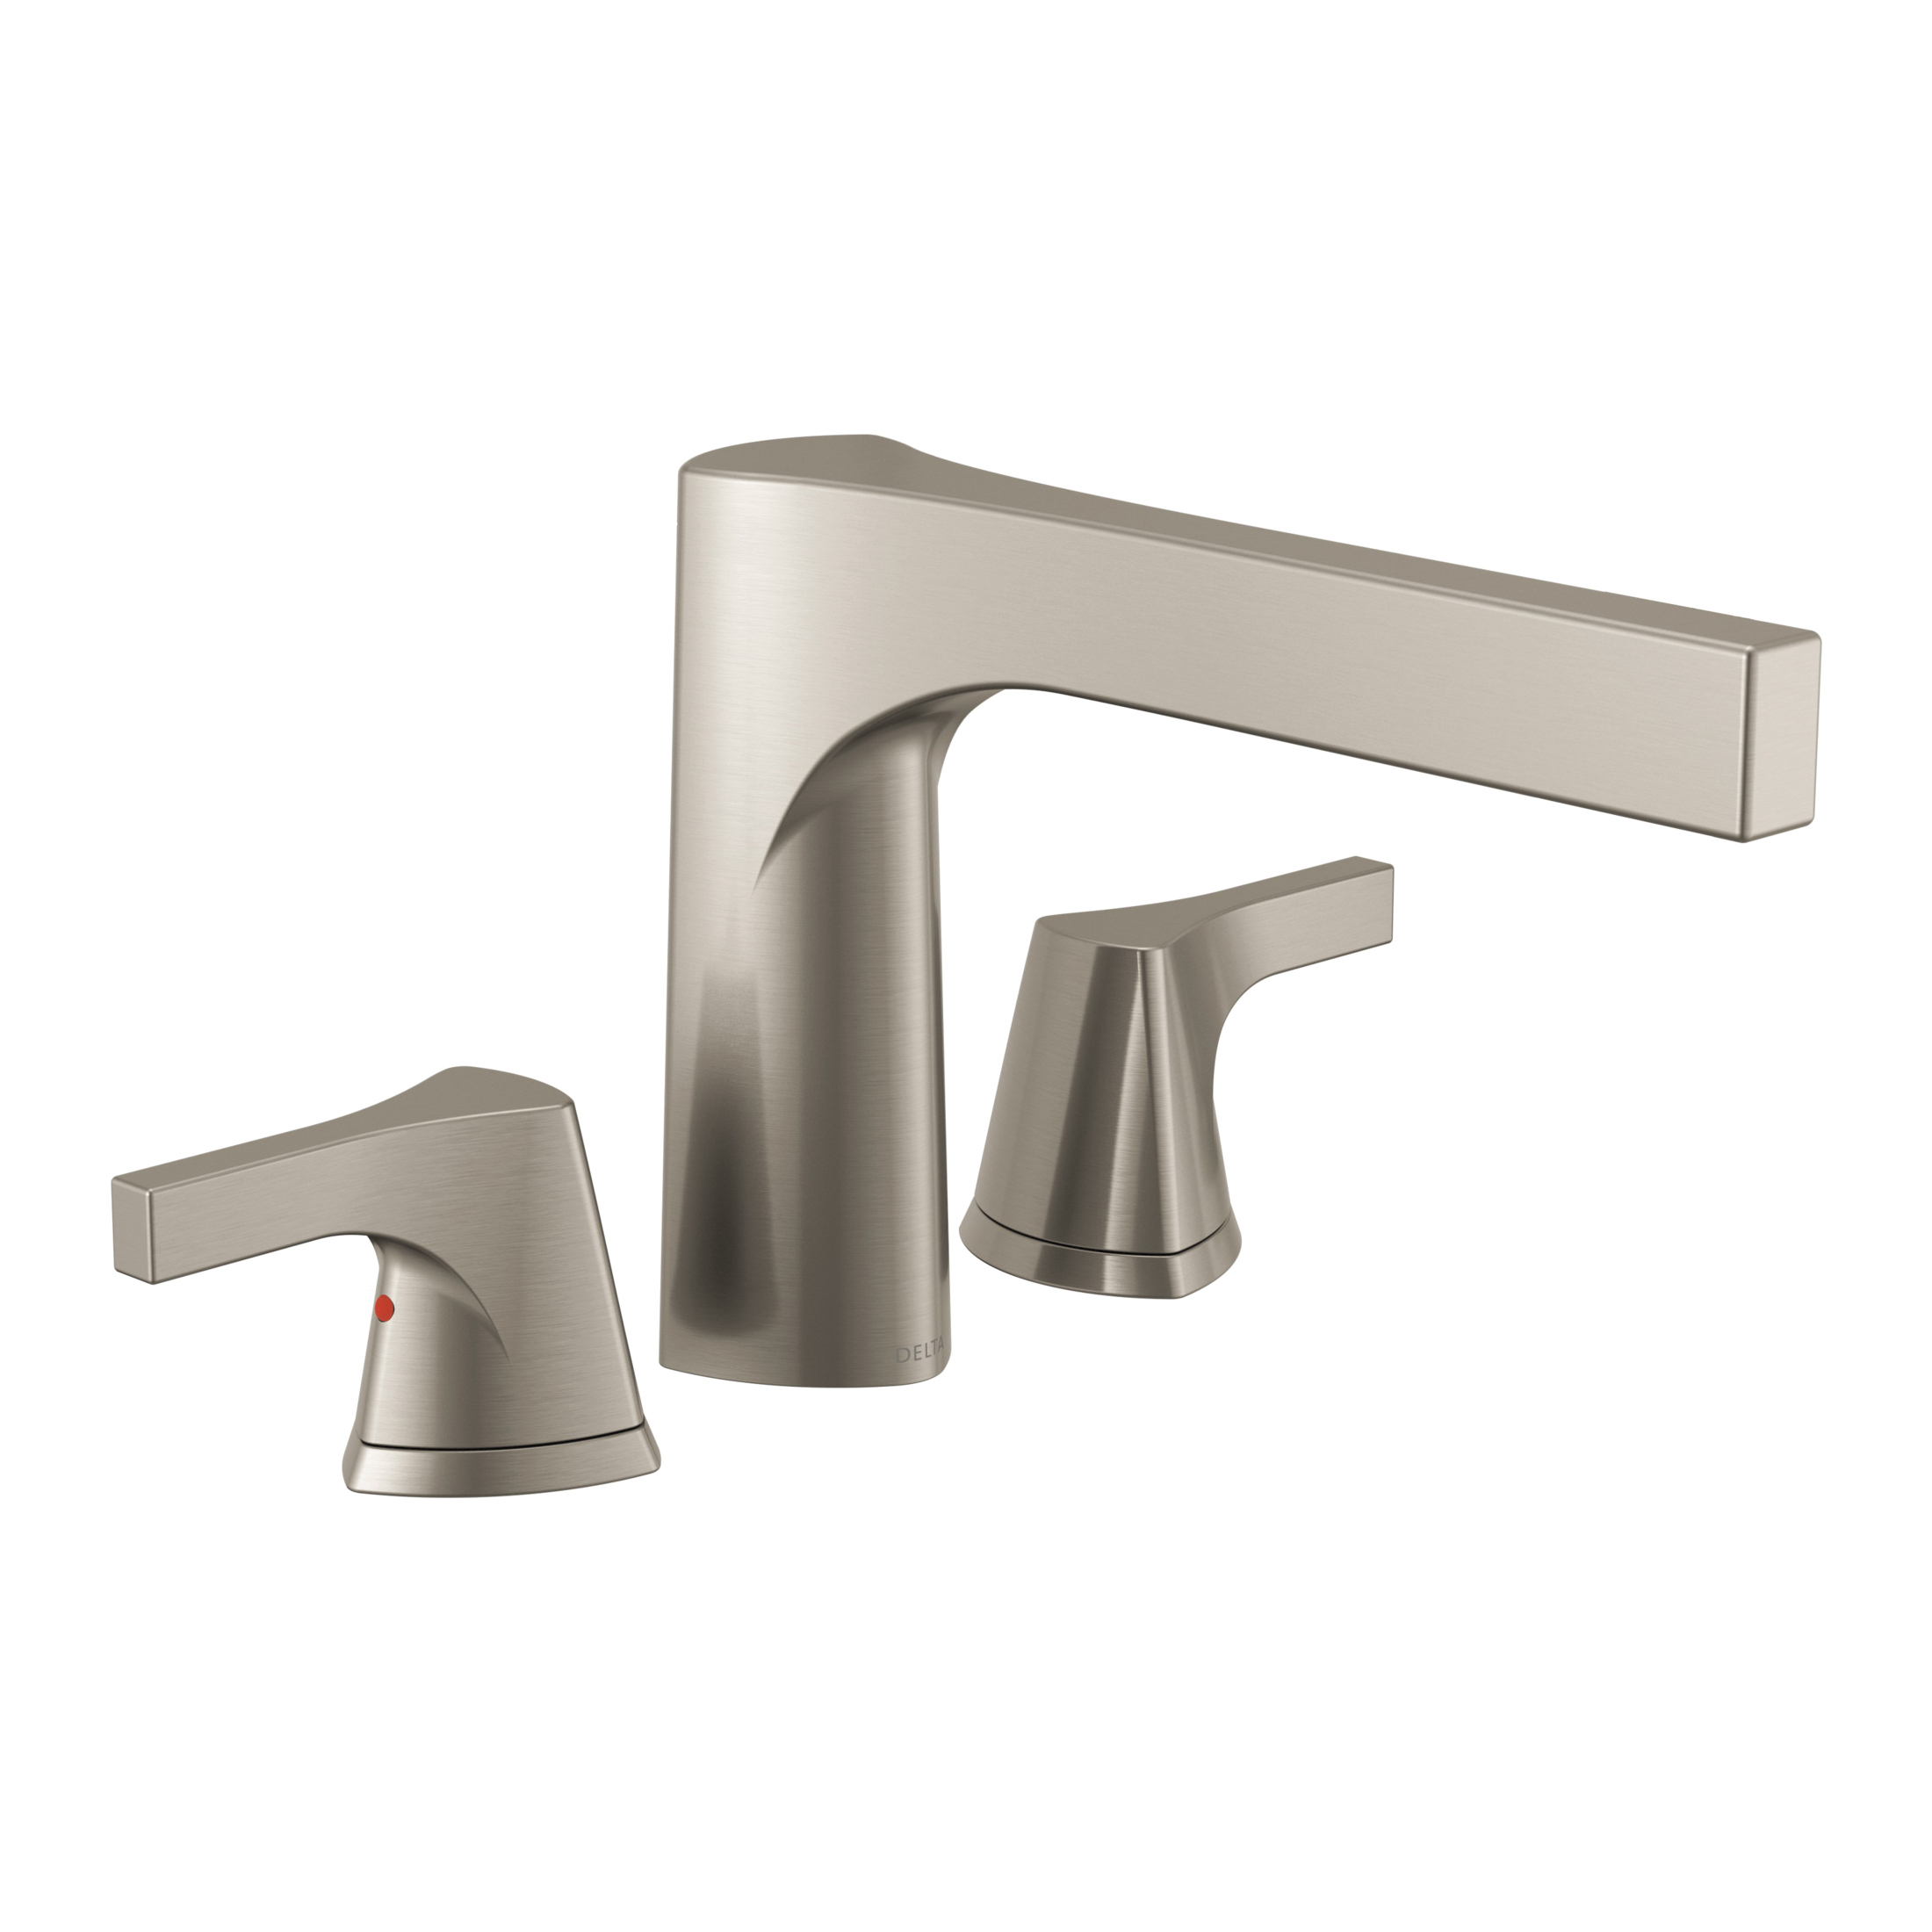 DELTA® T2774-SS Zura™ Roman Tub Trim, 2 gpm, 11 to 16 in Center, Stainless Steel, 2 Handles, Hand Shower Yes/No: No, Domestic